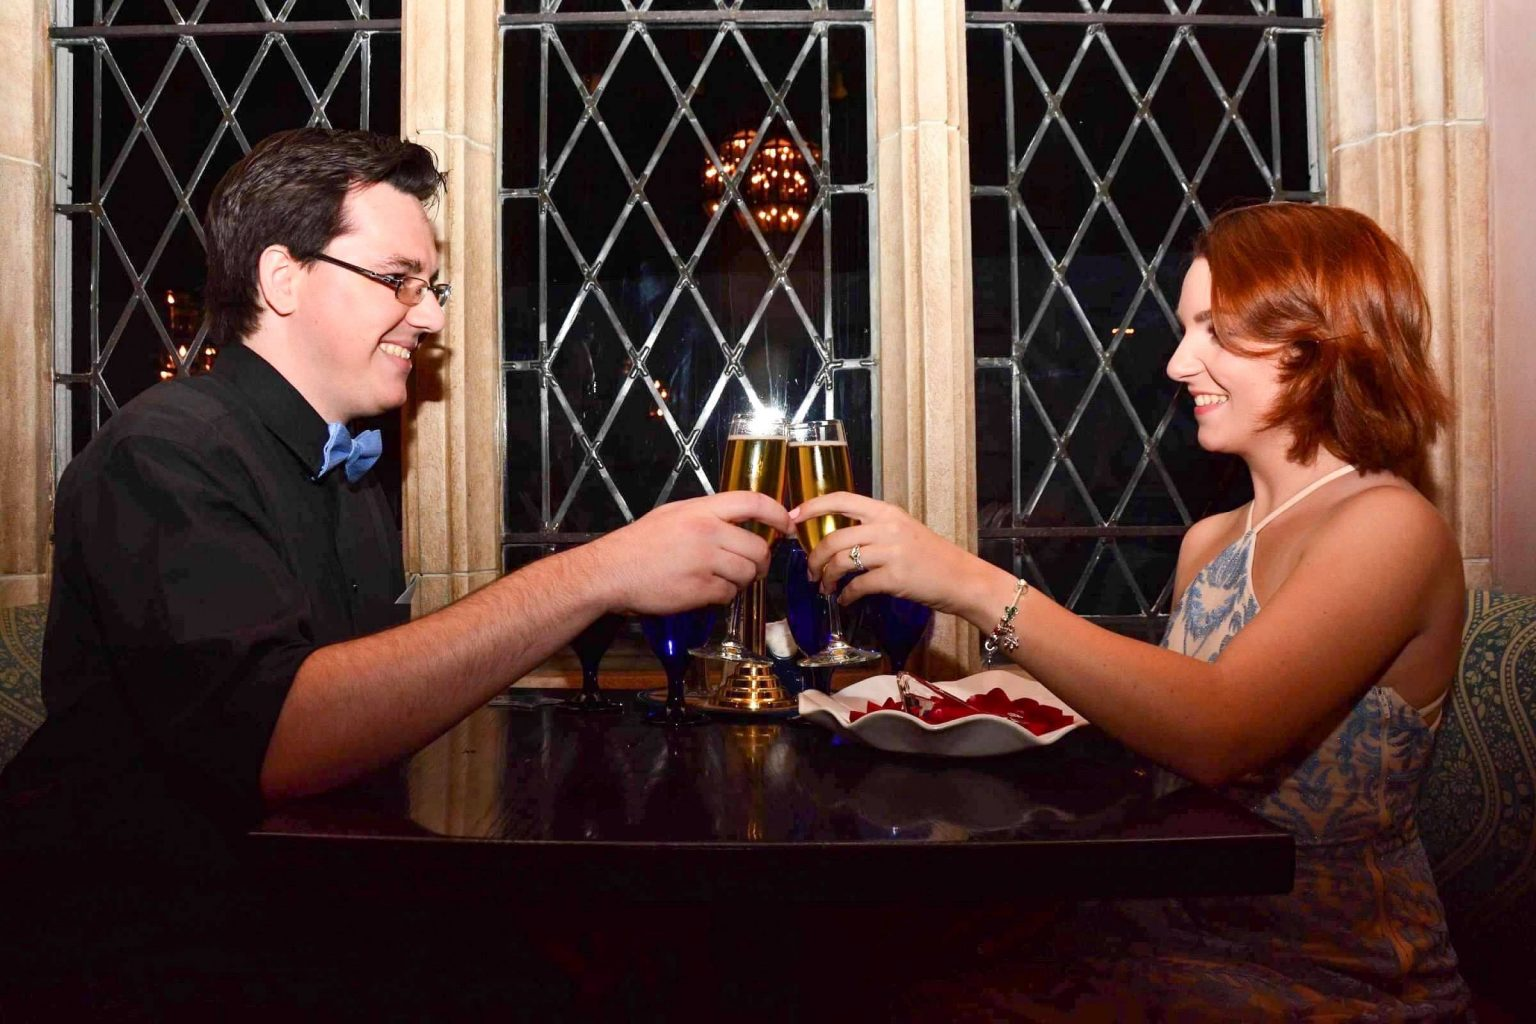 Toasting to an Engagement at Cinderella's Royal Table